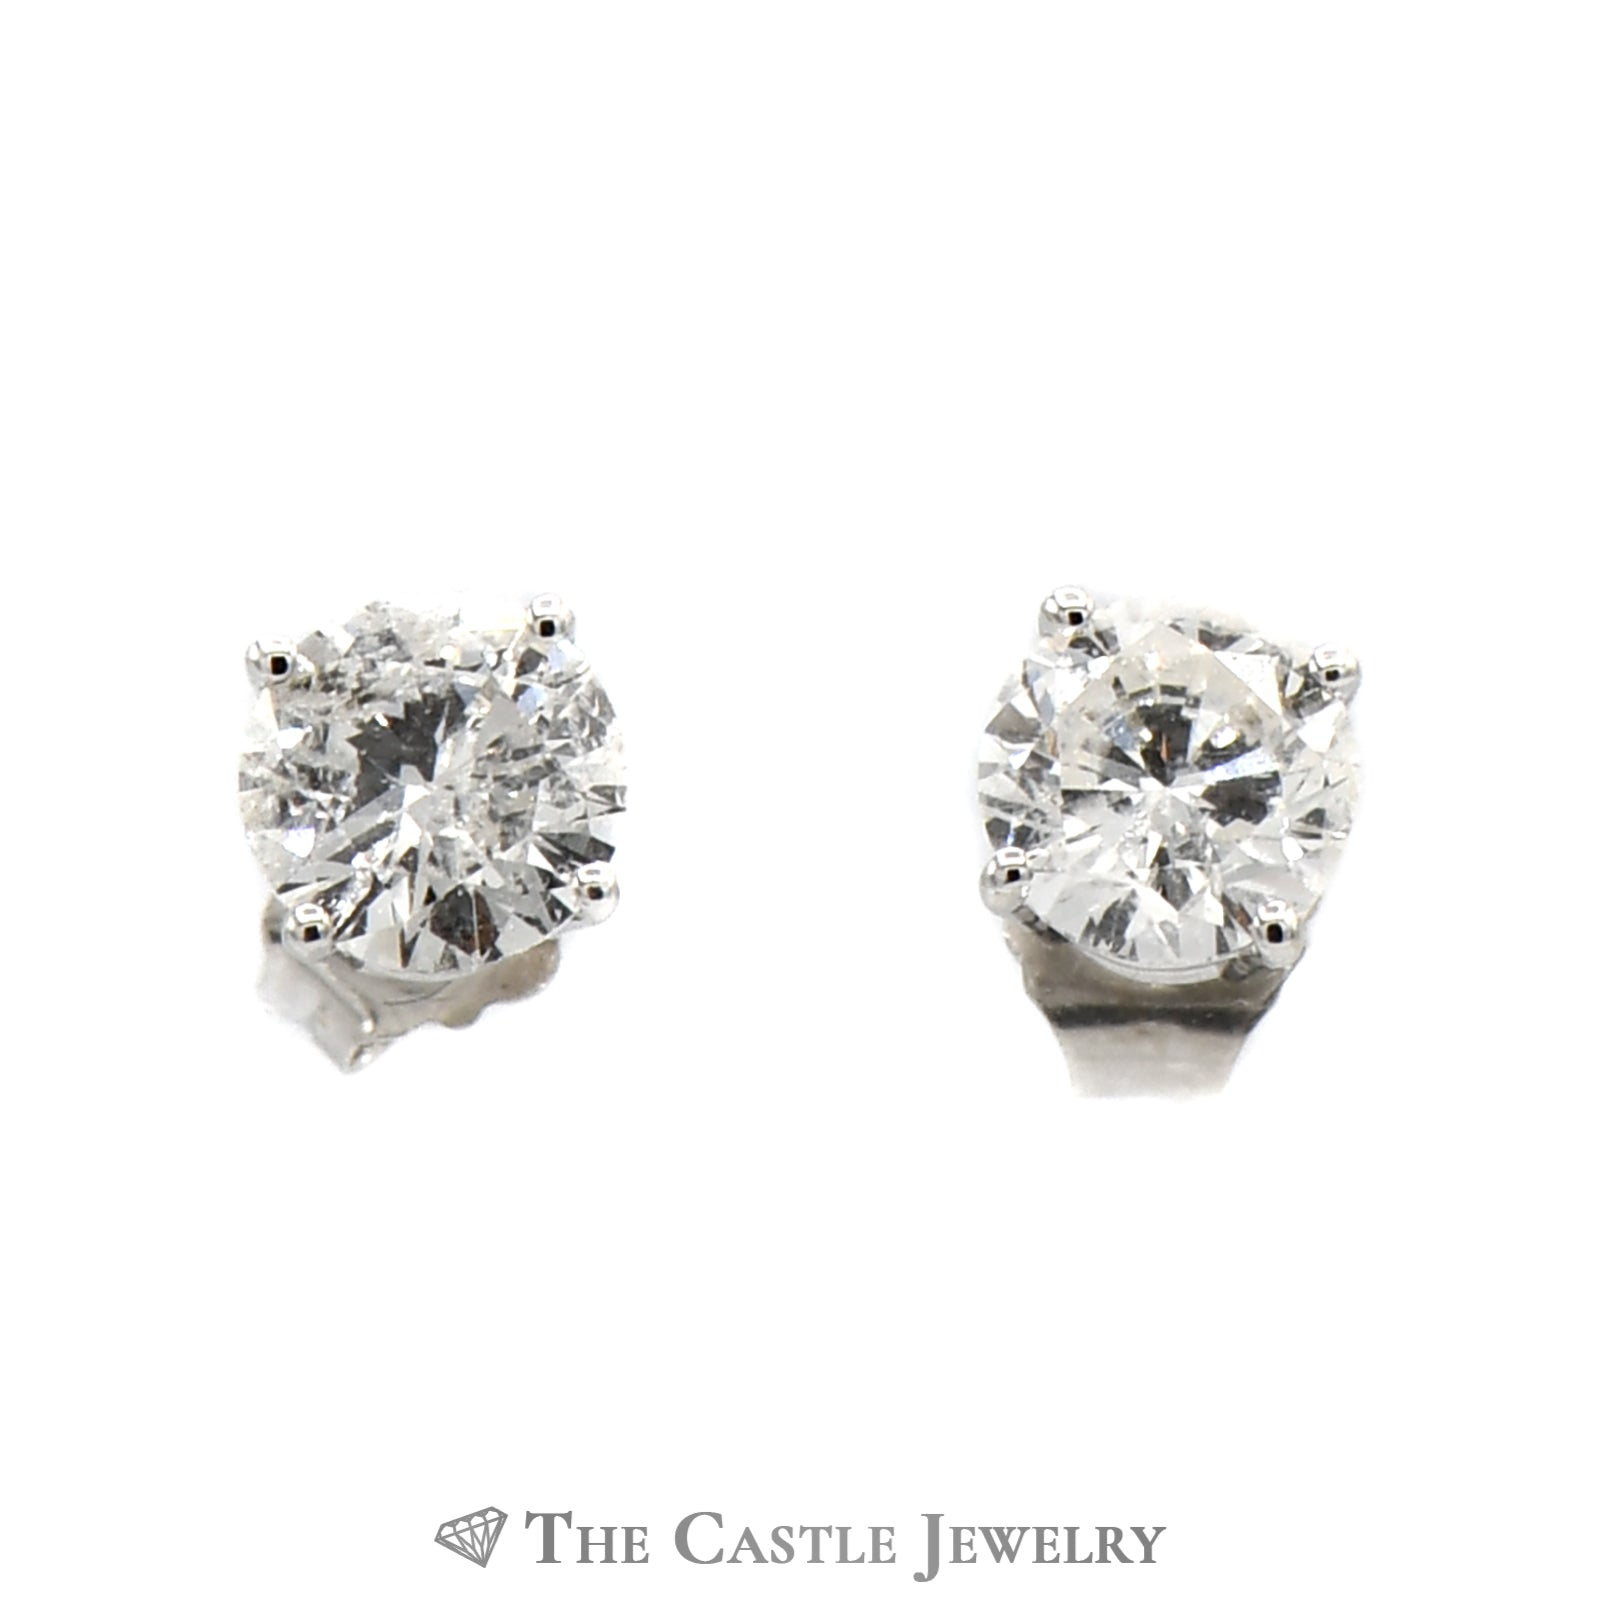 1cttw Round Brilliant Cut Diamond Stud Earrings in 14K White Gold